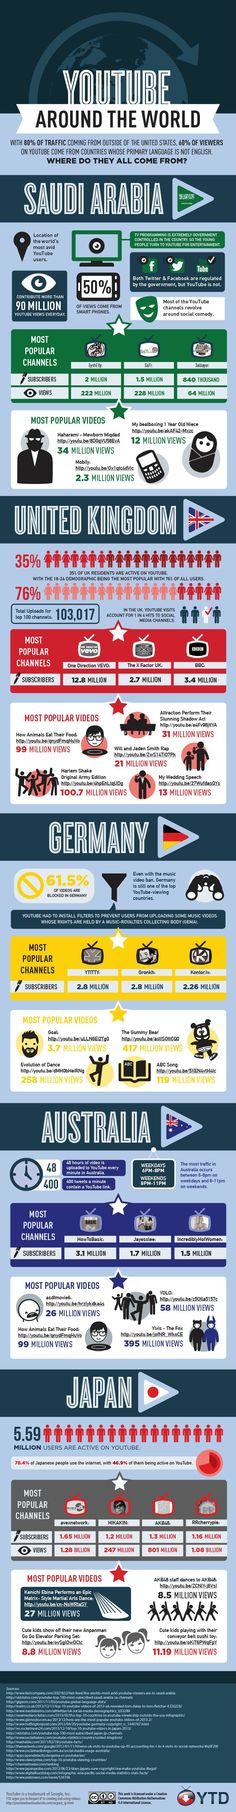 Interesting #infographic about #YouTube stats around the world.